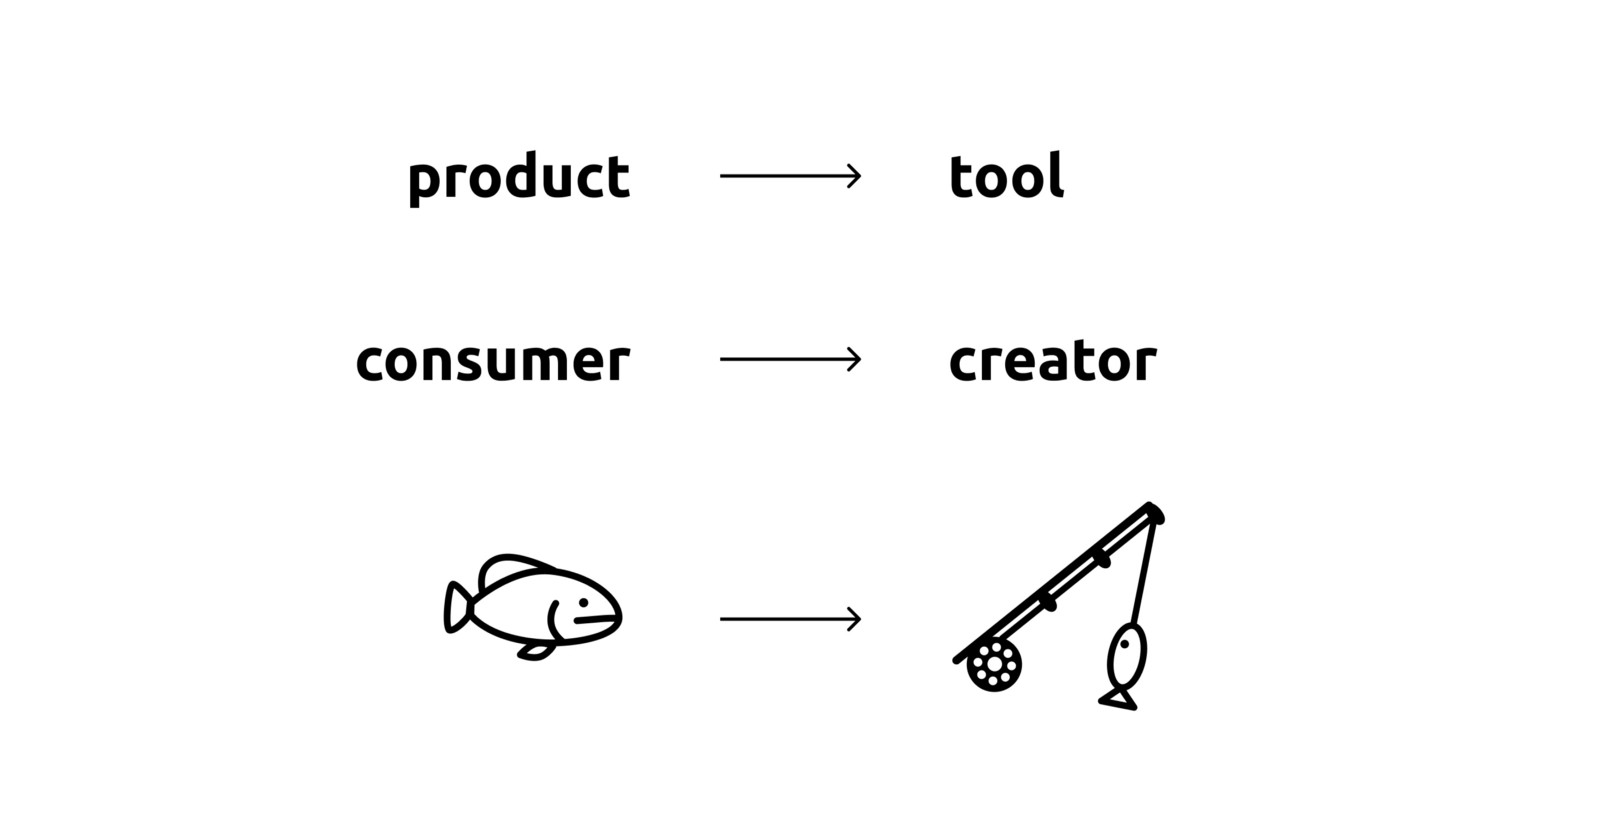 Illustration showing transition from product to tool, consumer to creator and fish to fishing rod.